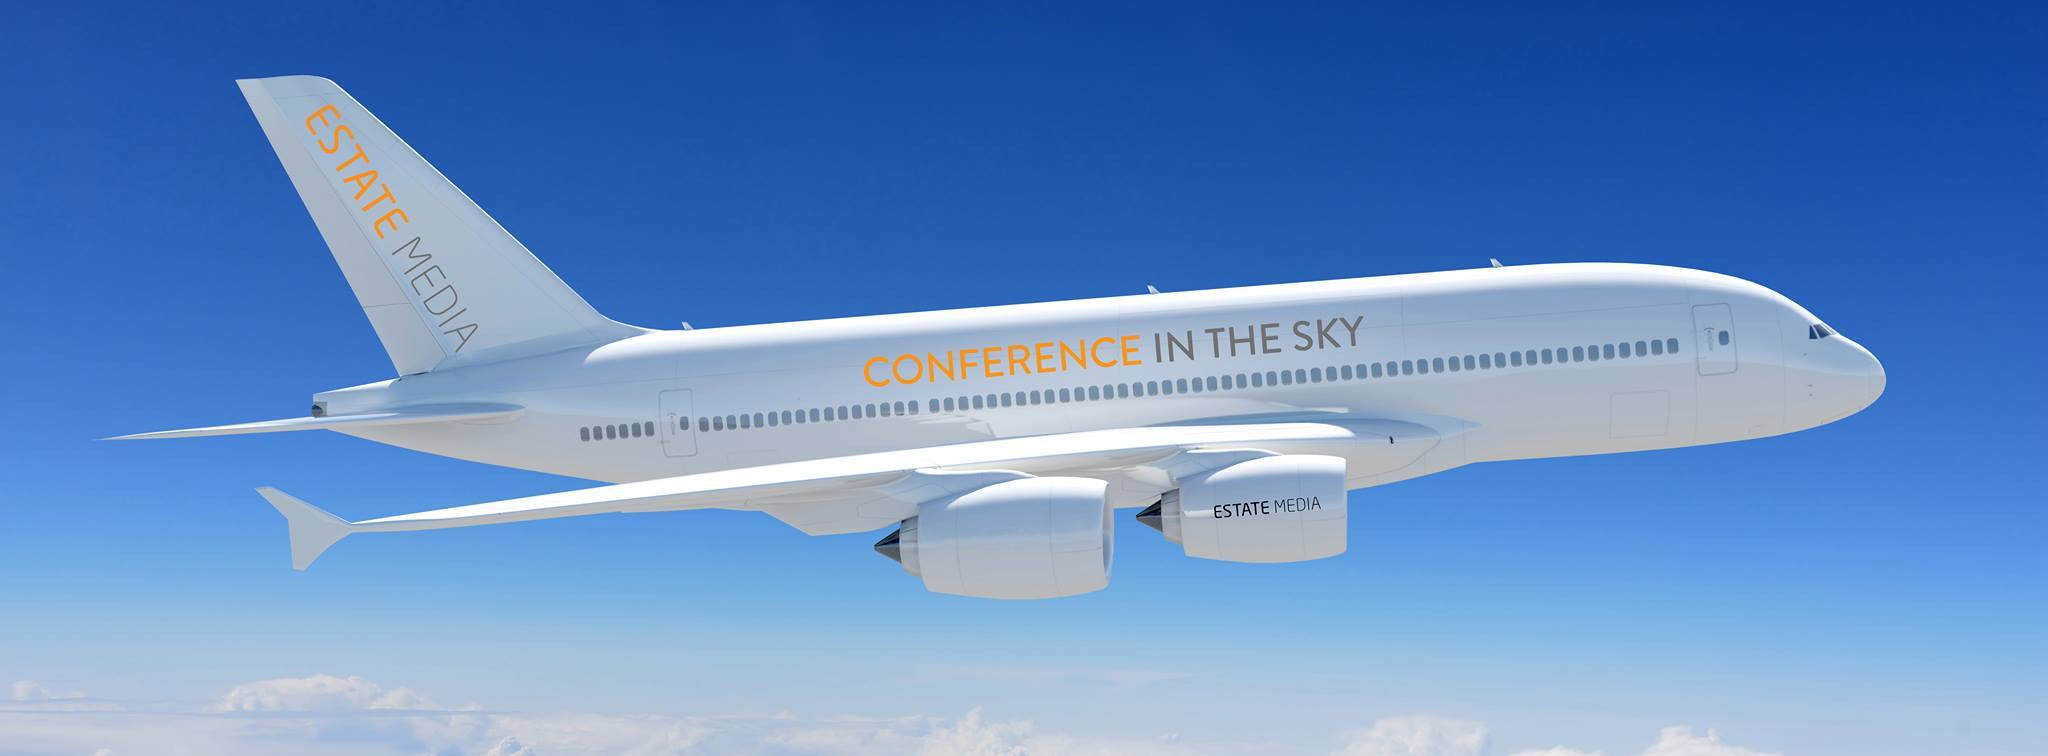 Conference in the sky 2019